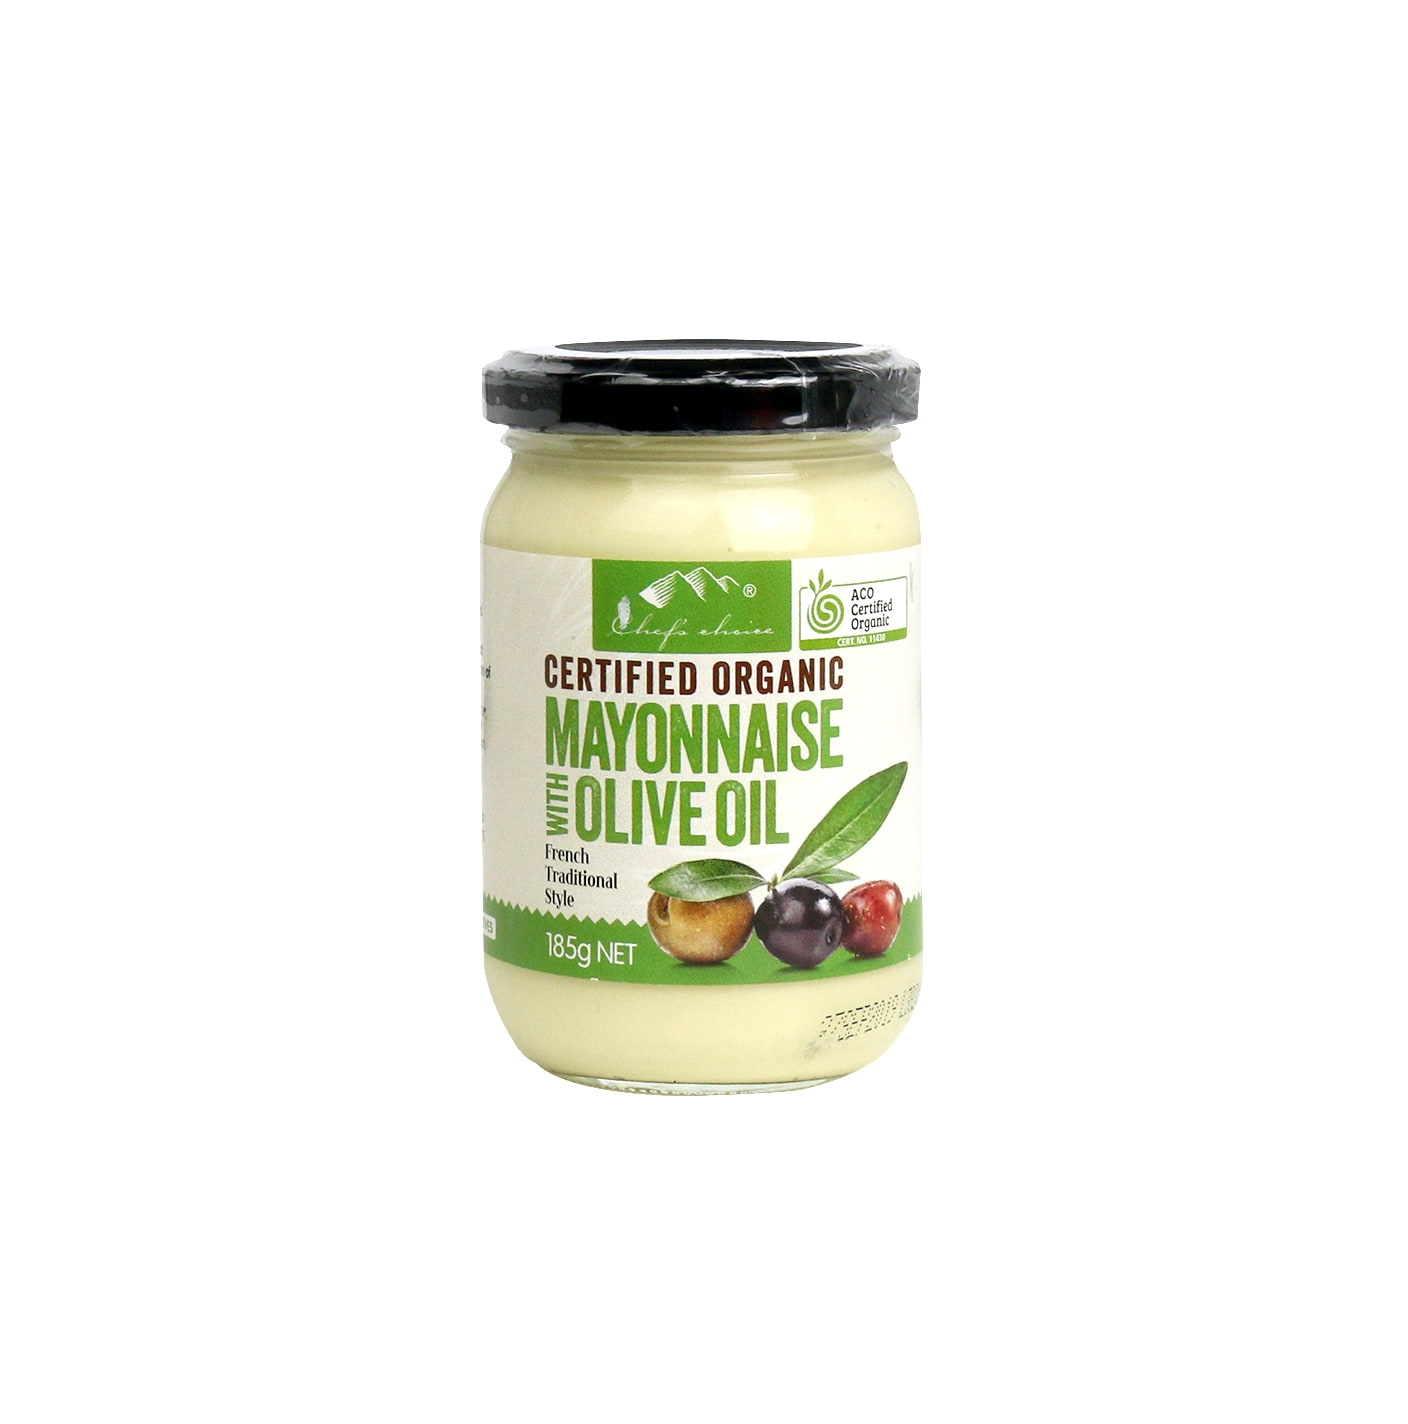 Organic Mayonnaise with Olive Oil 185g